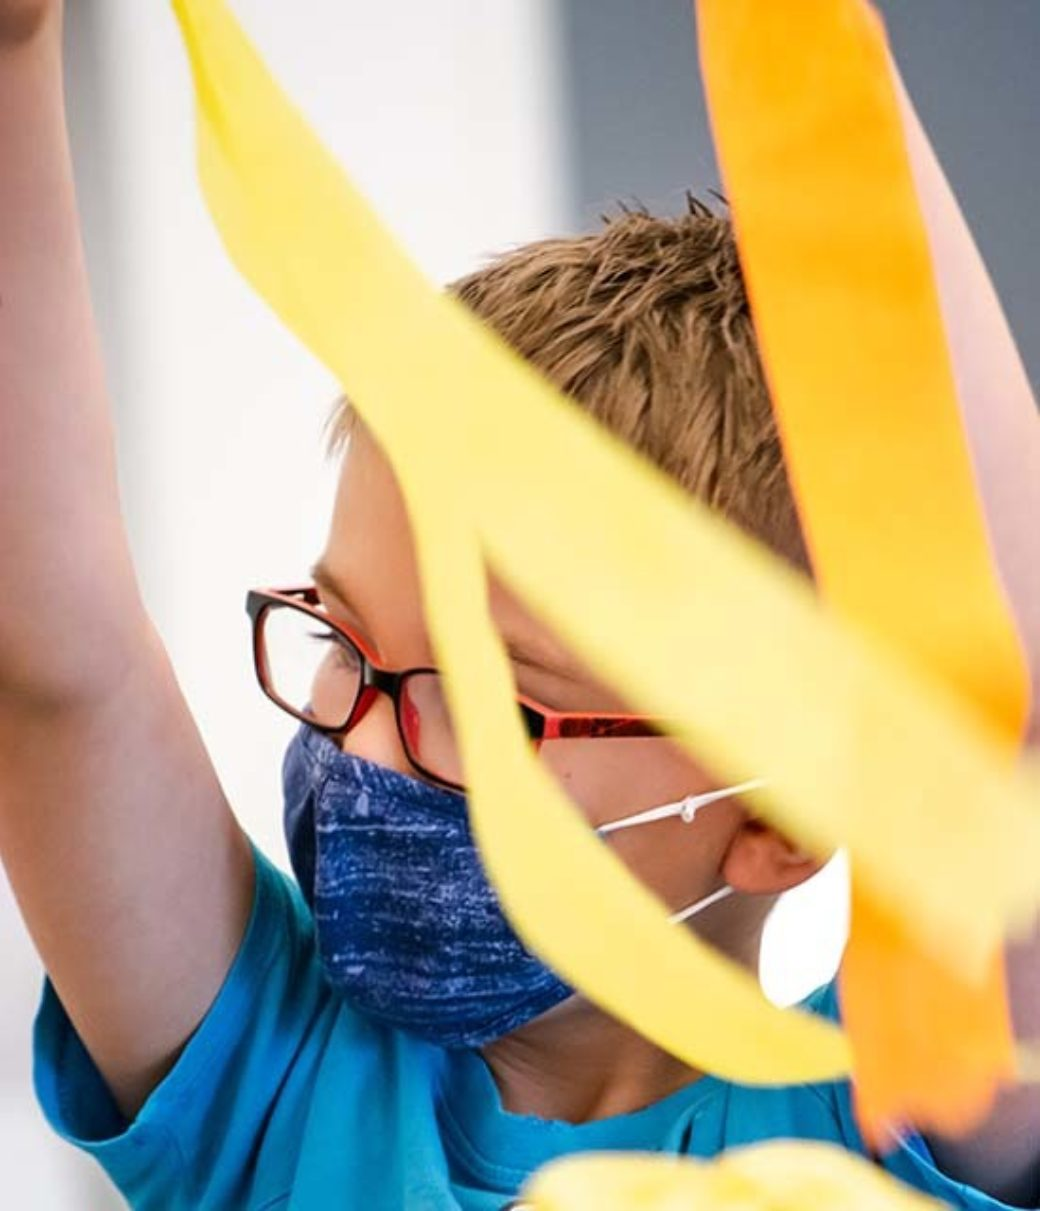 A child with glasses plays with crepe paper streamers